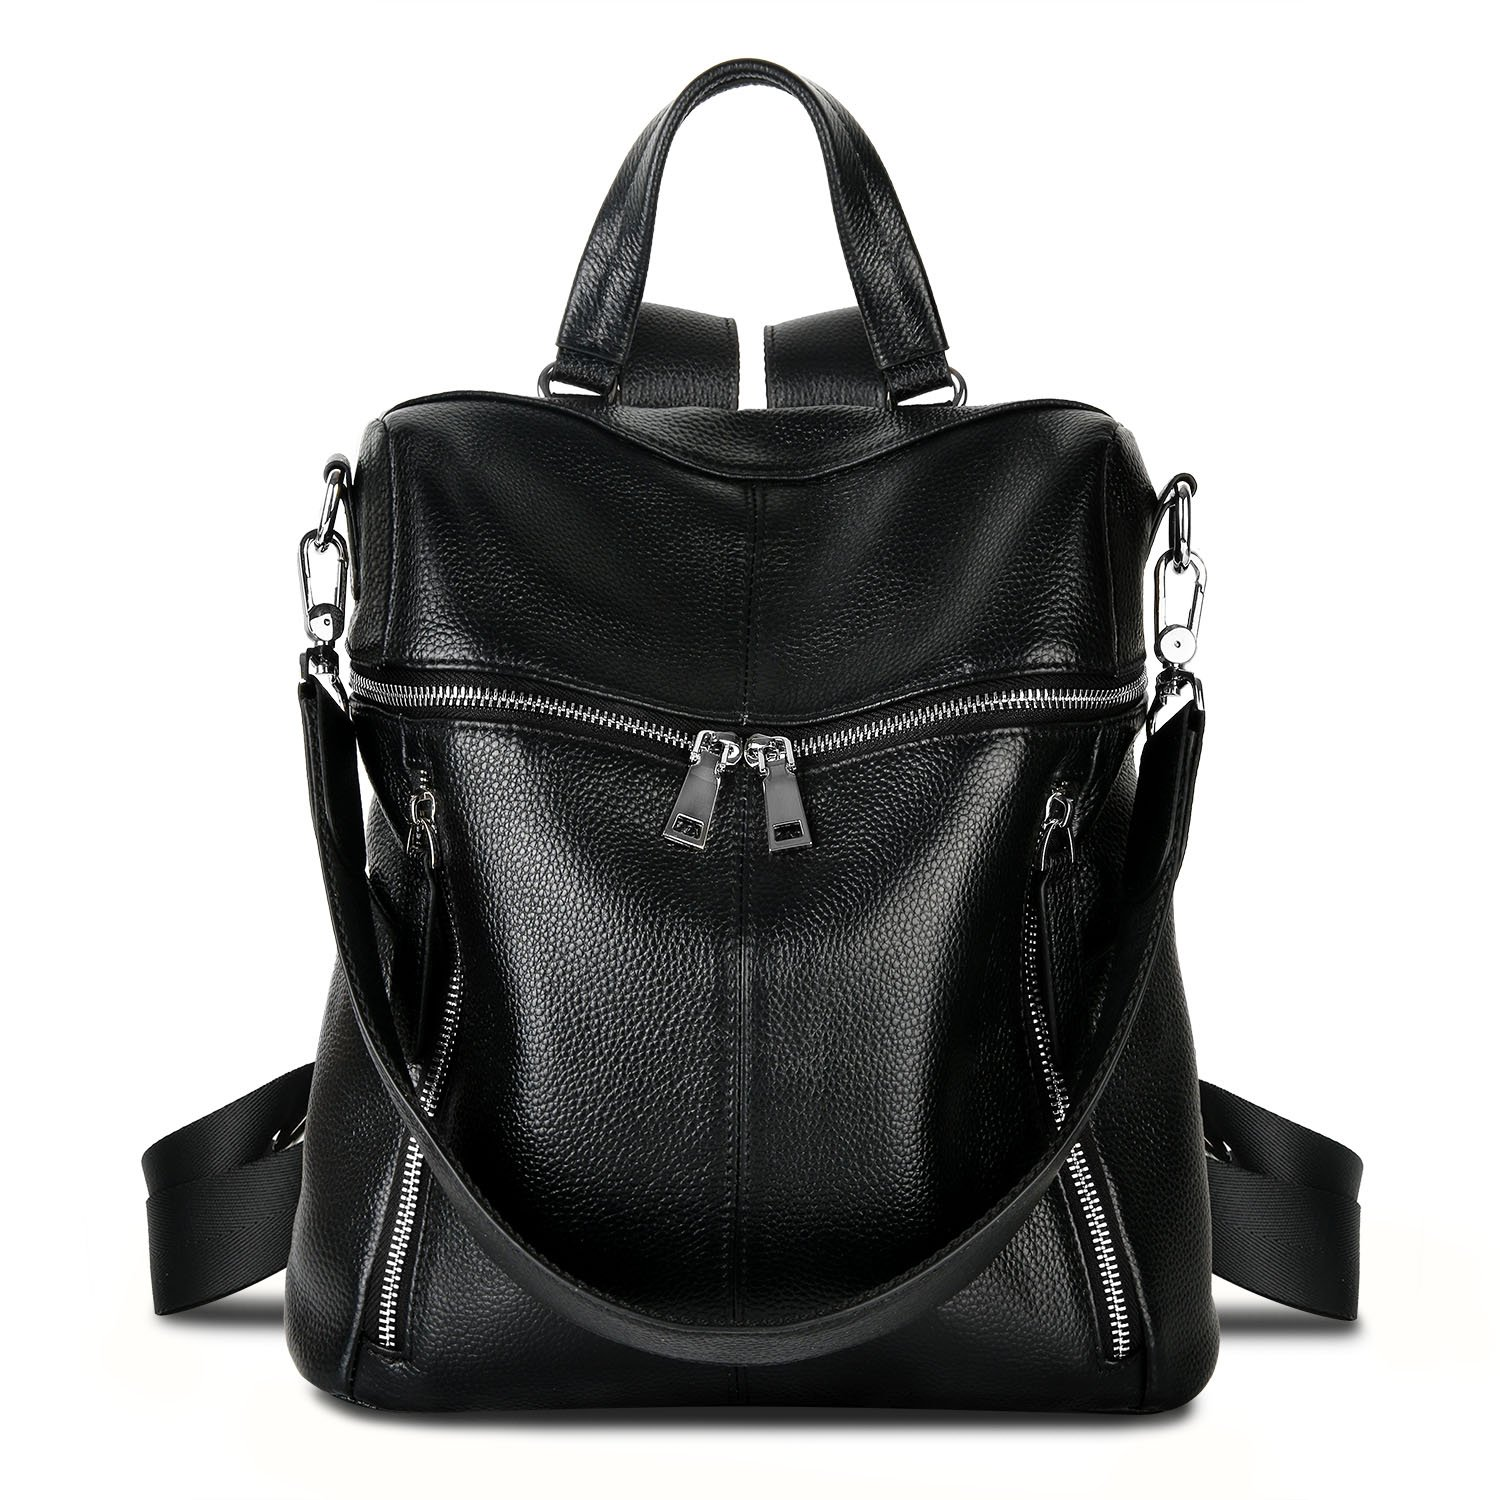 Backpacks for Women Large Capacity Leather Womens Backpack School Bag Shoulder Bags Back to School